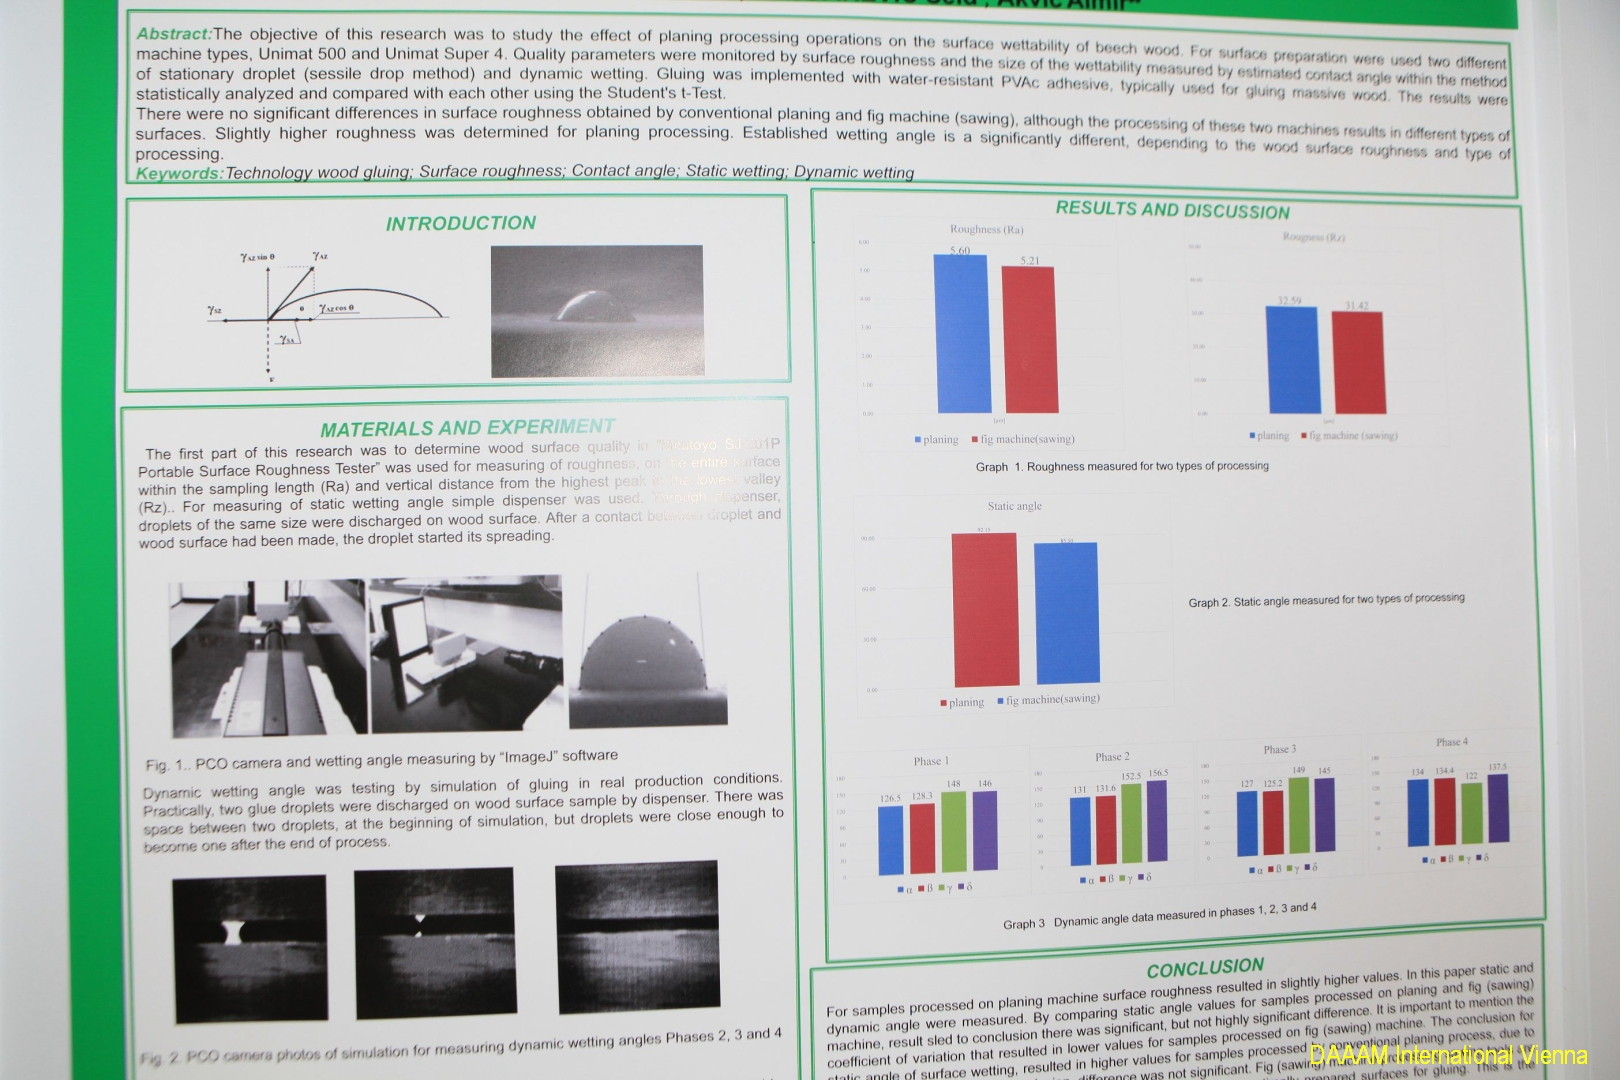 DAAAM_2016_Mostar_07_Posters_and_Presentations_Sessions_031